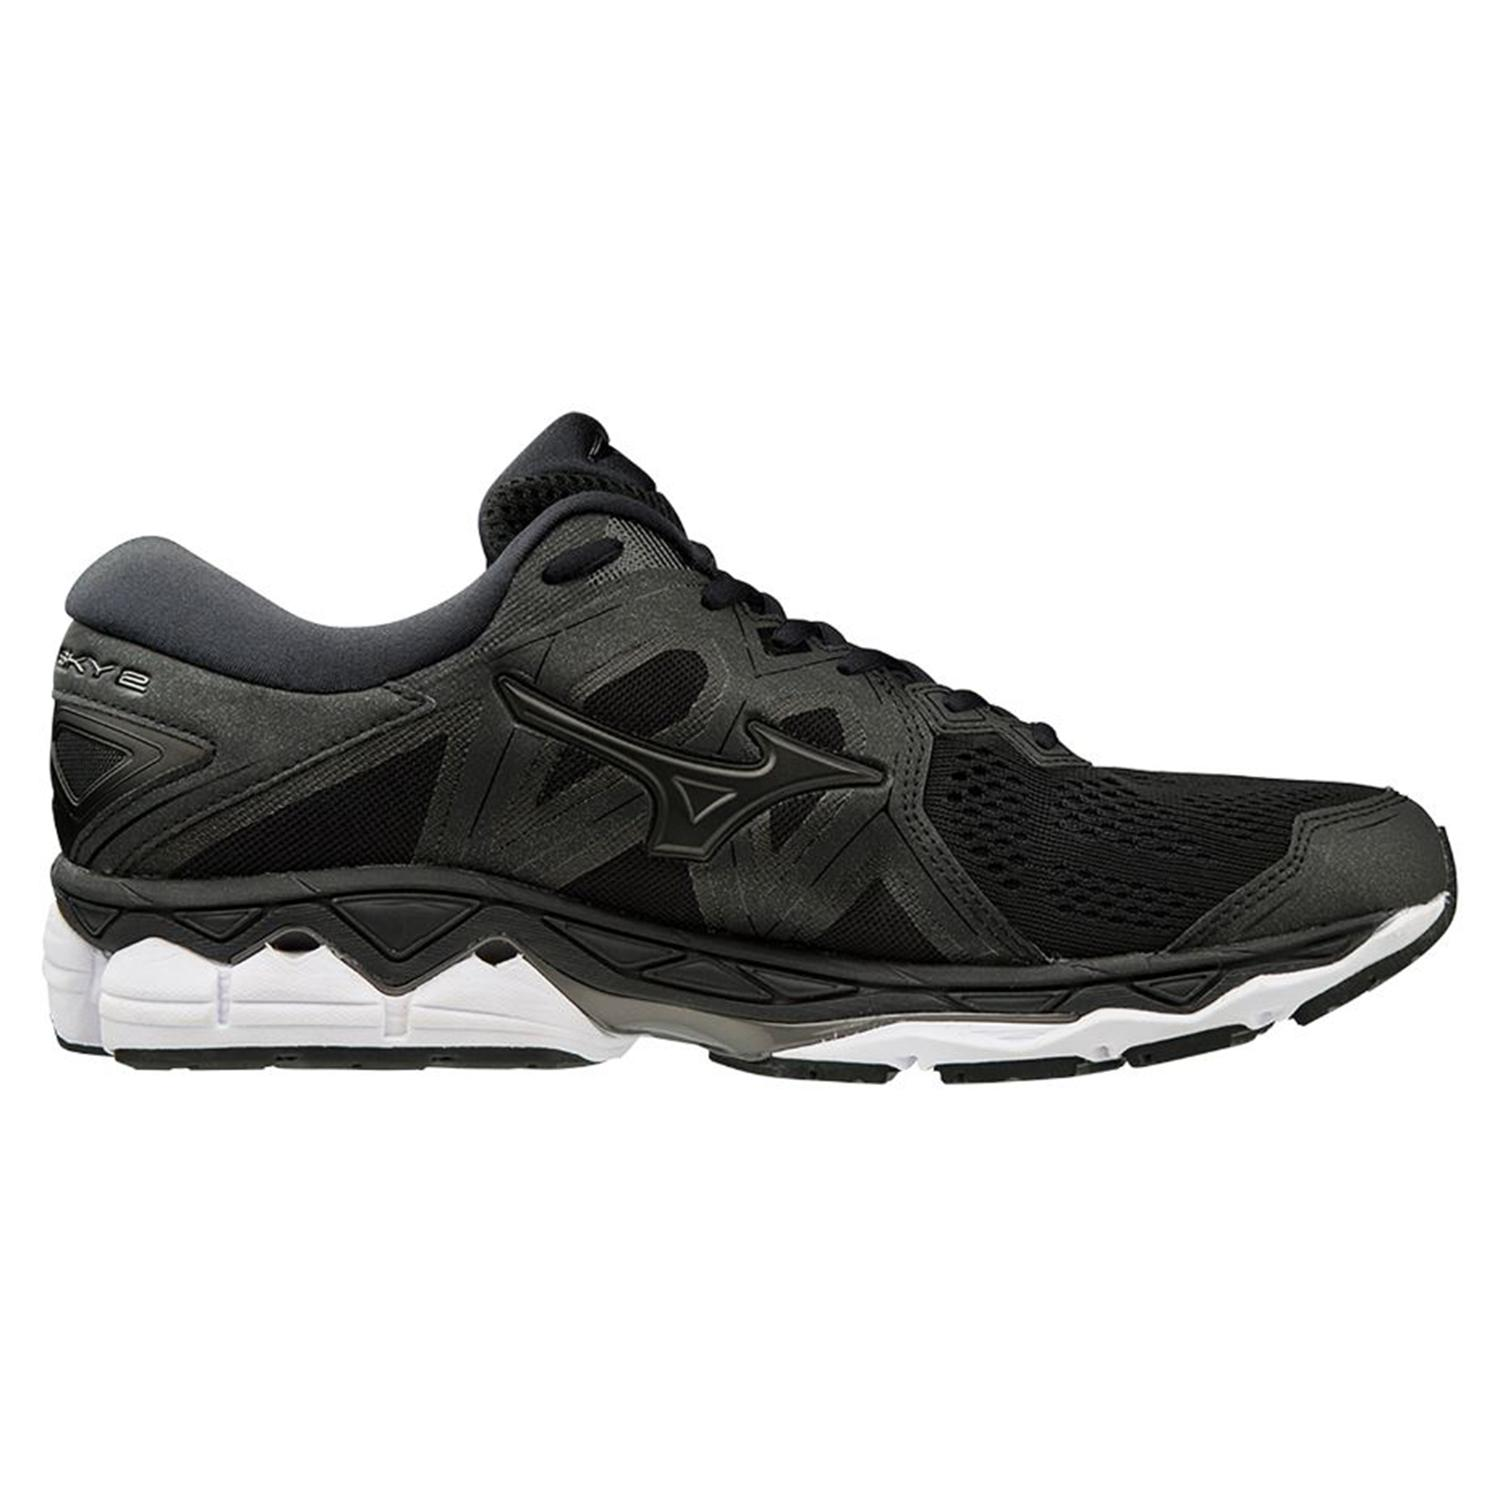 aecb4d5d Беговые кроссовки элит Mizuno 2019 Wave Sky 2 Black/Black/Met.Shadow ...